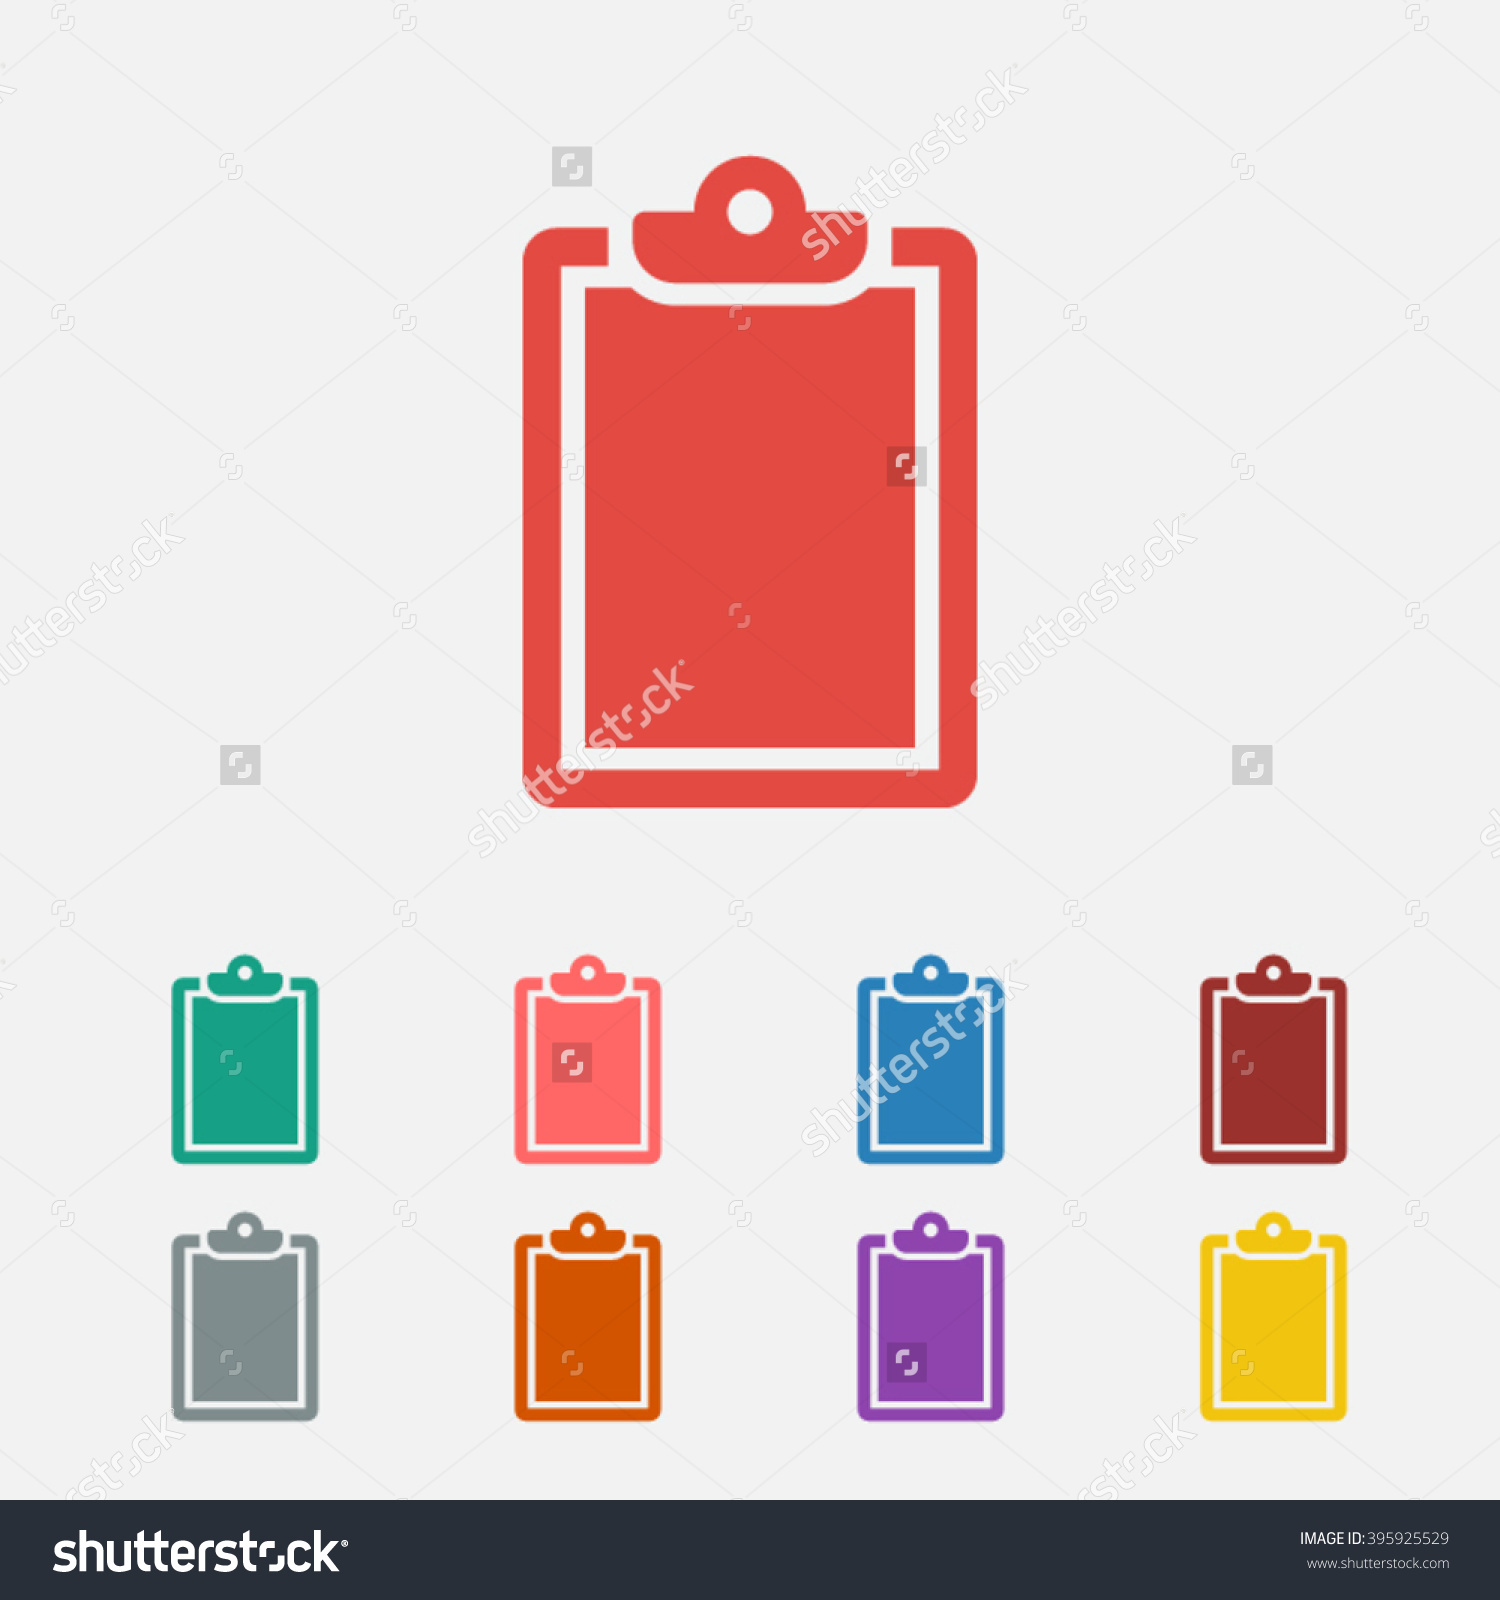 Set Of: Red List Vector Icon, Green List Icon, Pink List Icon.